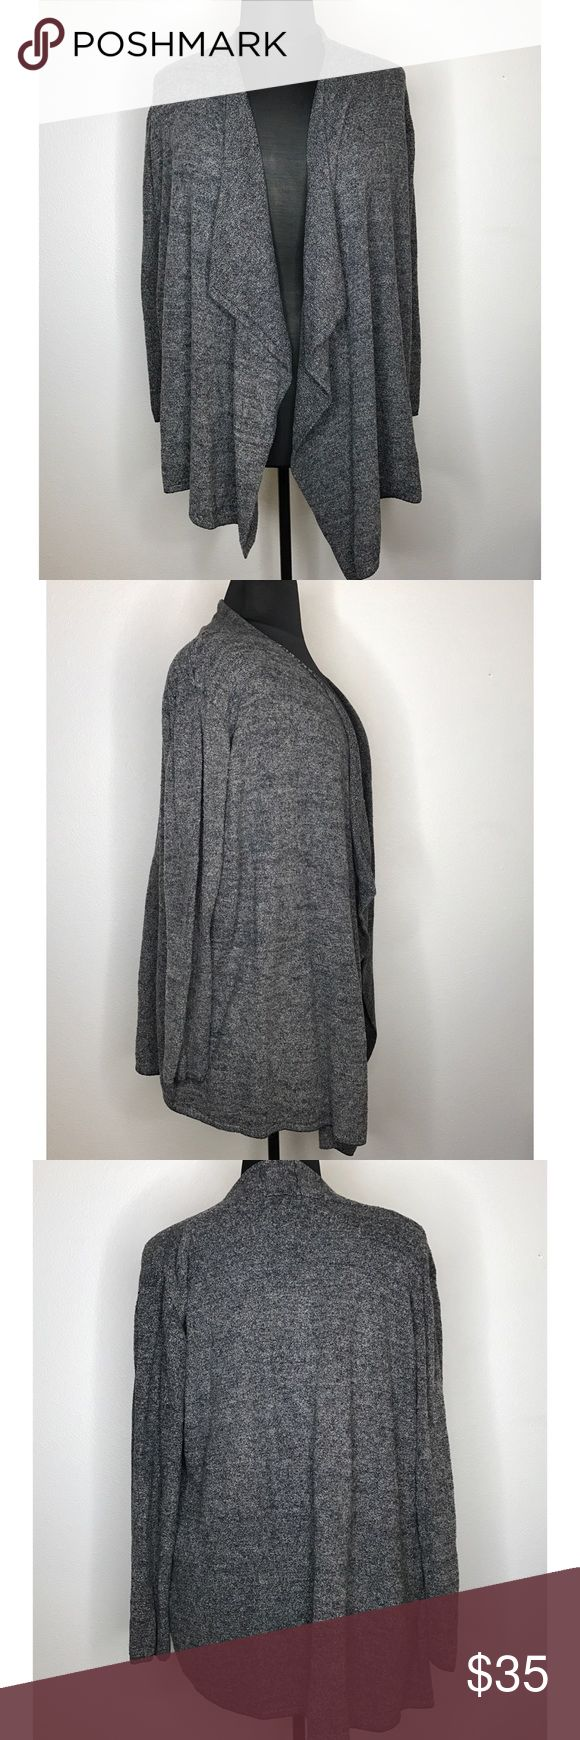 Plus Size Barefoot Dreams Cardigan Quite possibly the softest sweater ever! Barefoot Dreams Bamboo Chic Drape Front Cardigan. Nordstrom exclusive. Perfect for cold weather or just lounging at home. Barefoot Dreams Sweaters Cardigans